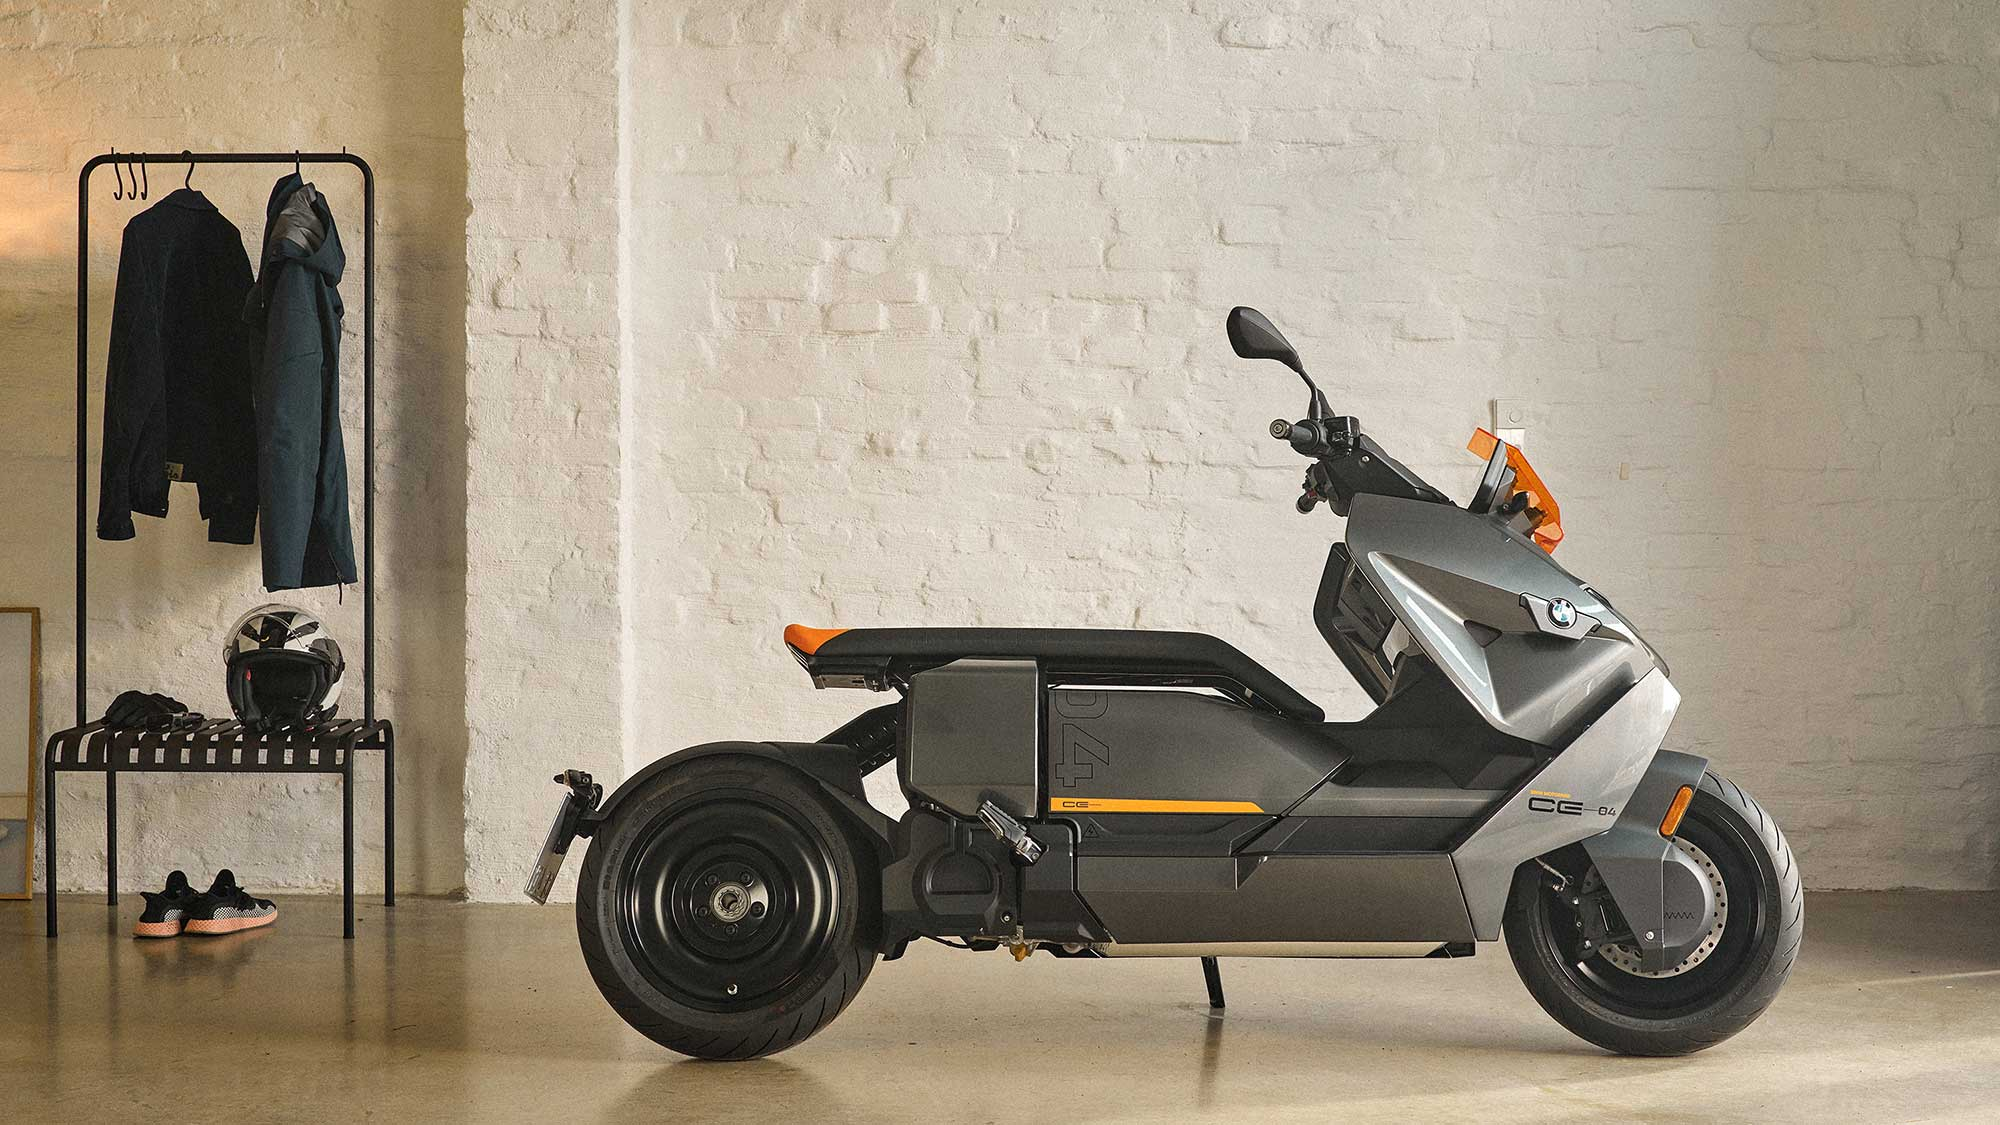 2022 BMW CE 04 Electric Scooter